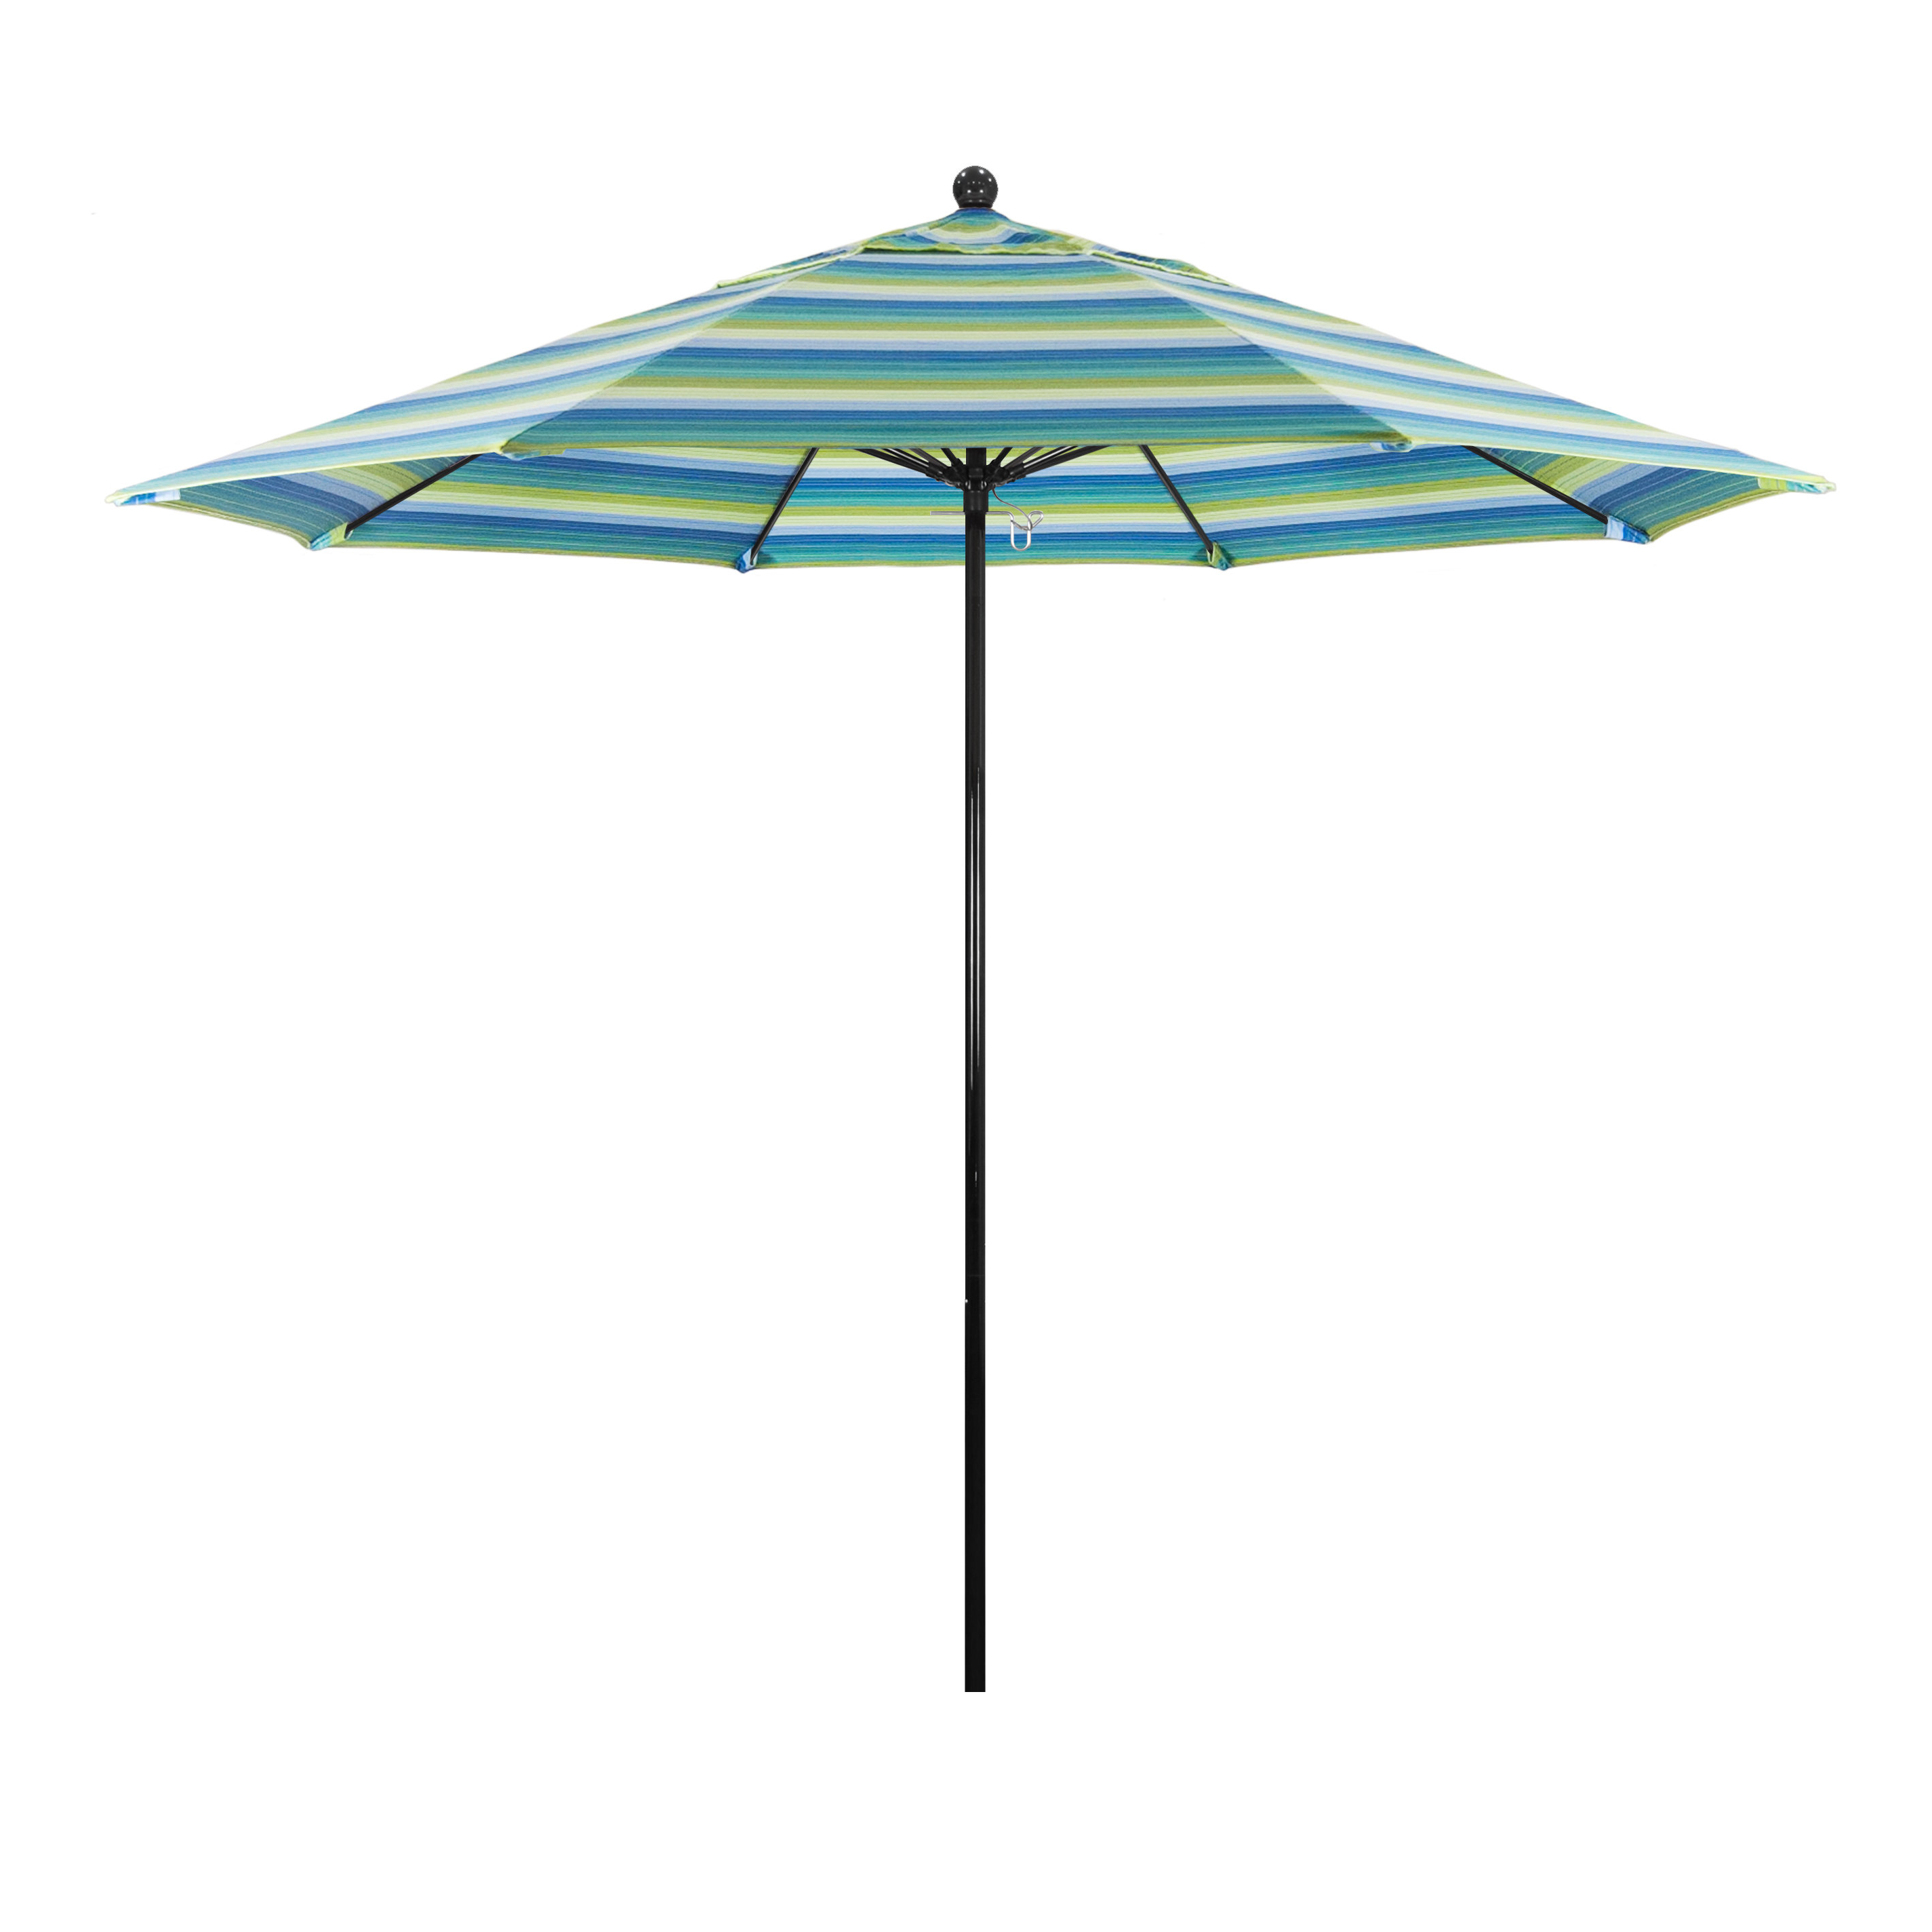 Oceanside Series 9' Market Sunbrella Umbrella Regarding Recent Bayside Series Cantilever Umbrellas (View 8 of 20)